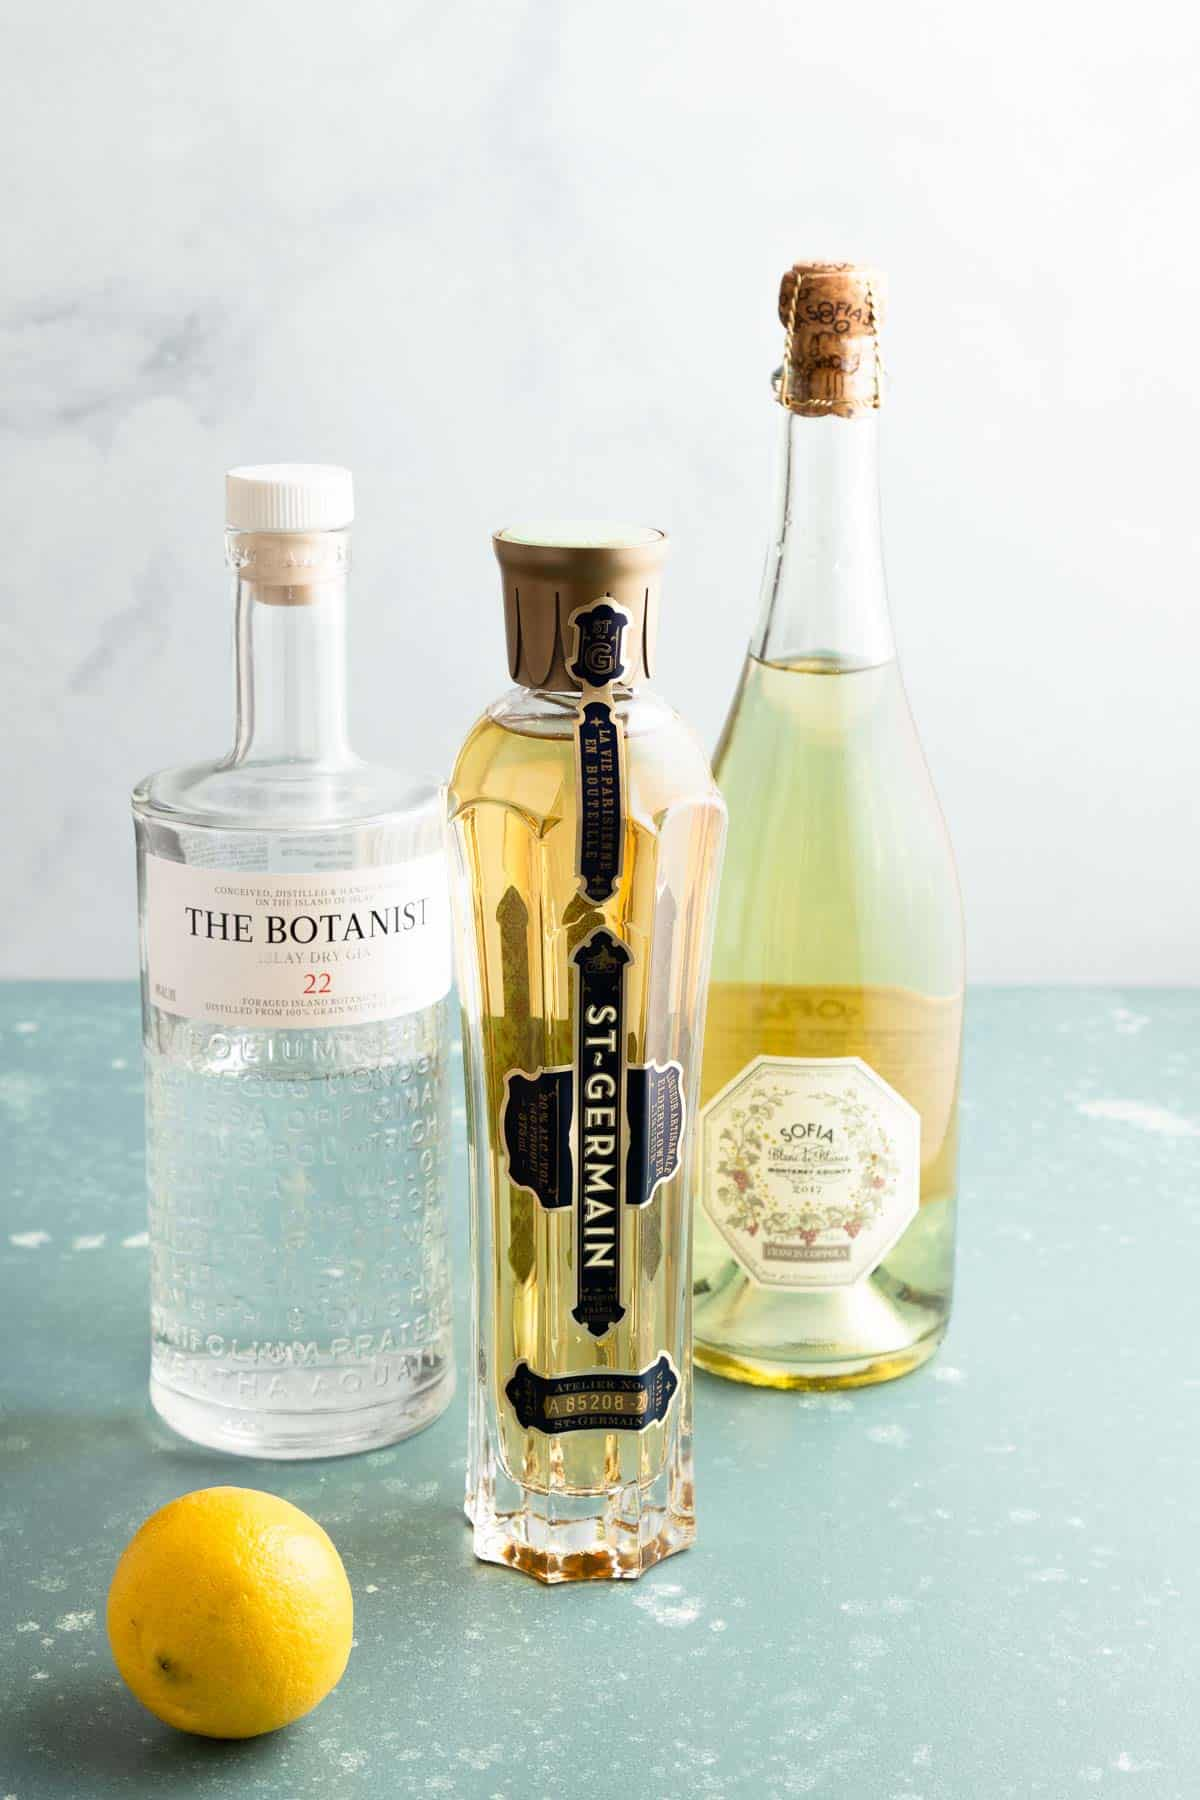 A bottle of gin, sparkling wine, and elderflower liqueur and a lemon on the side